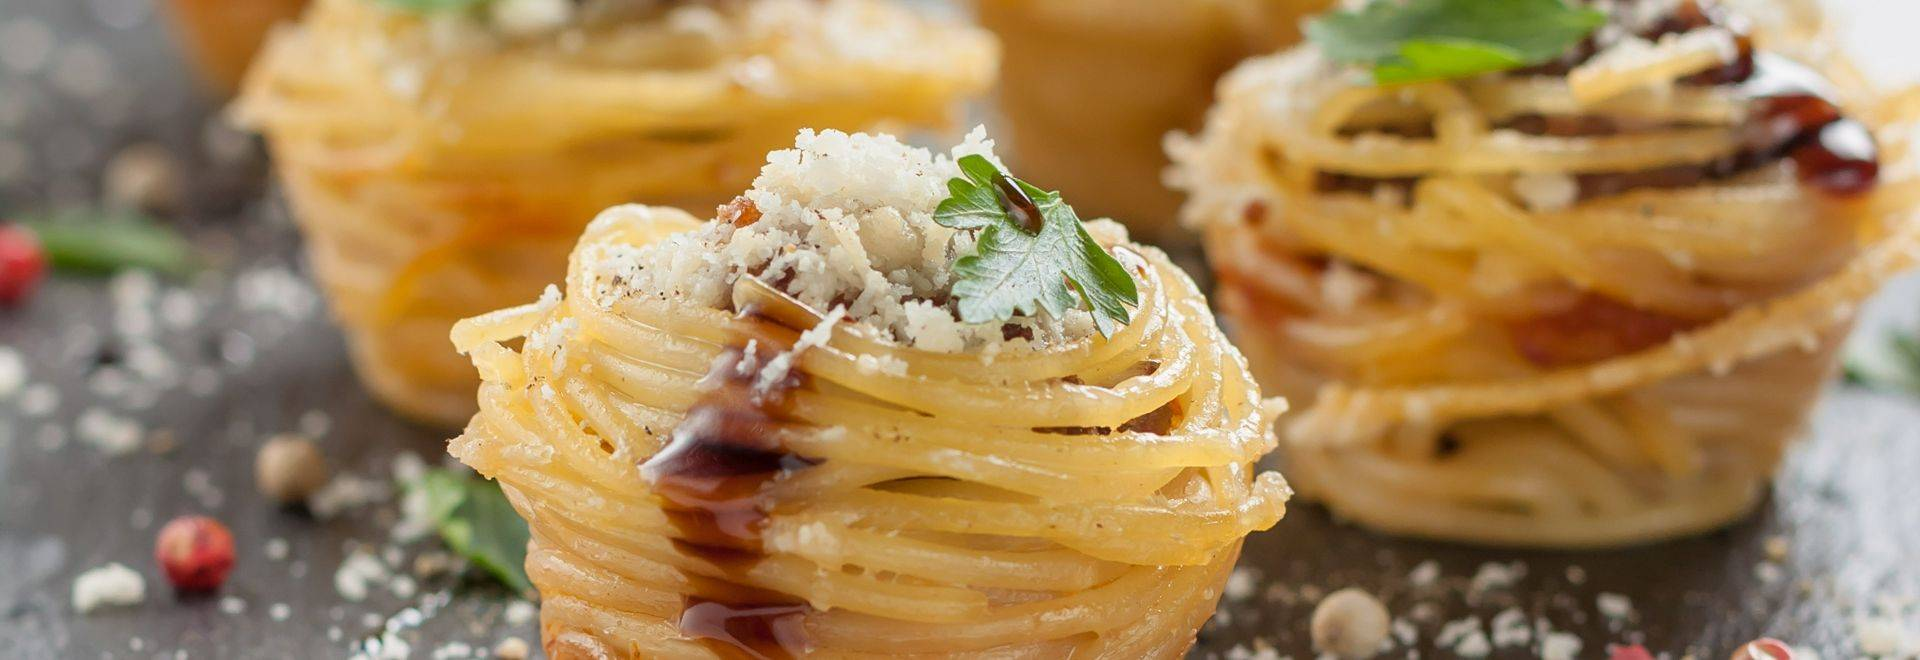 muffins from spaghetti with cheese and meatballs on a white background